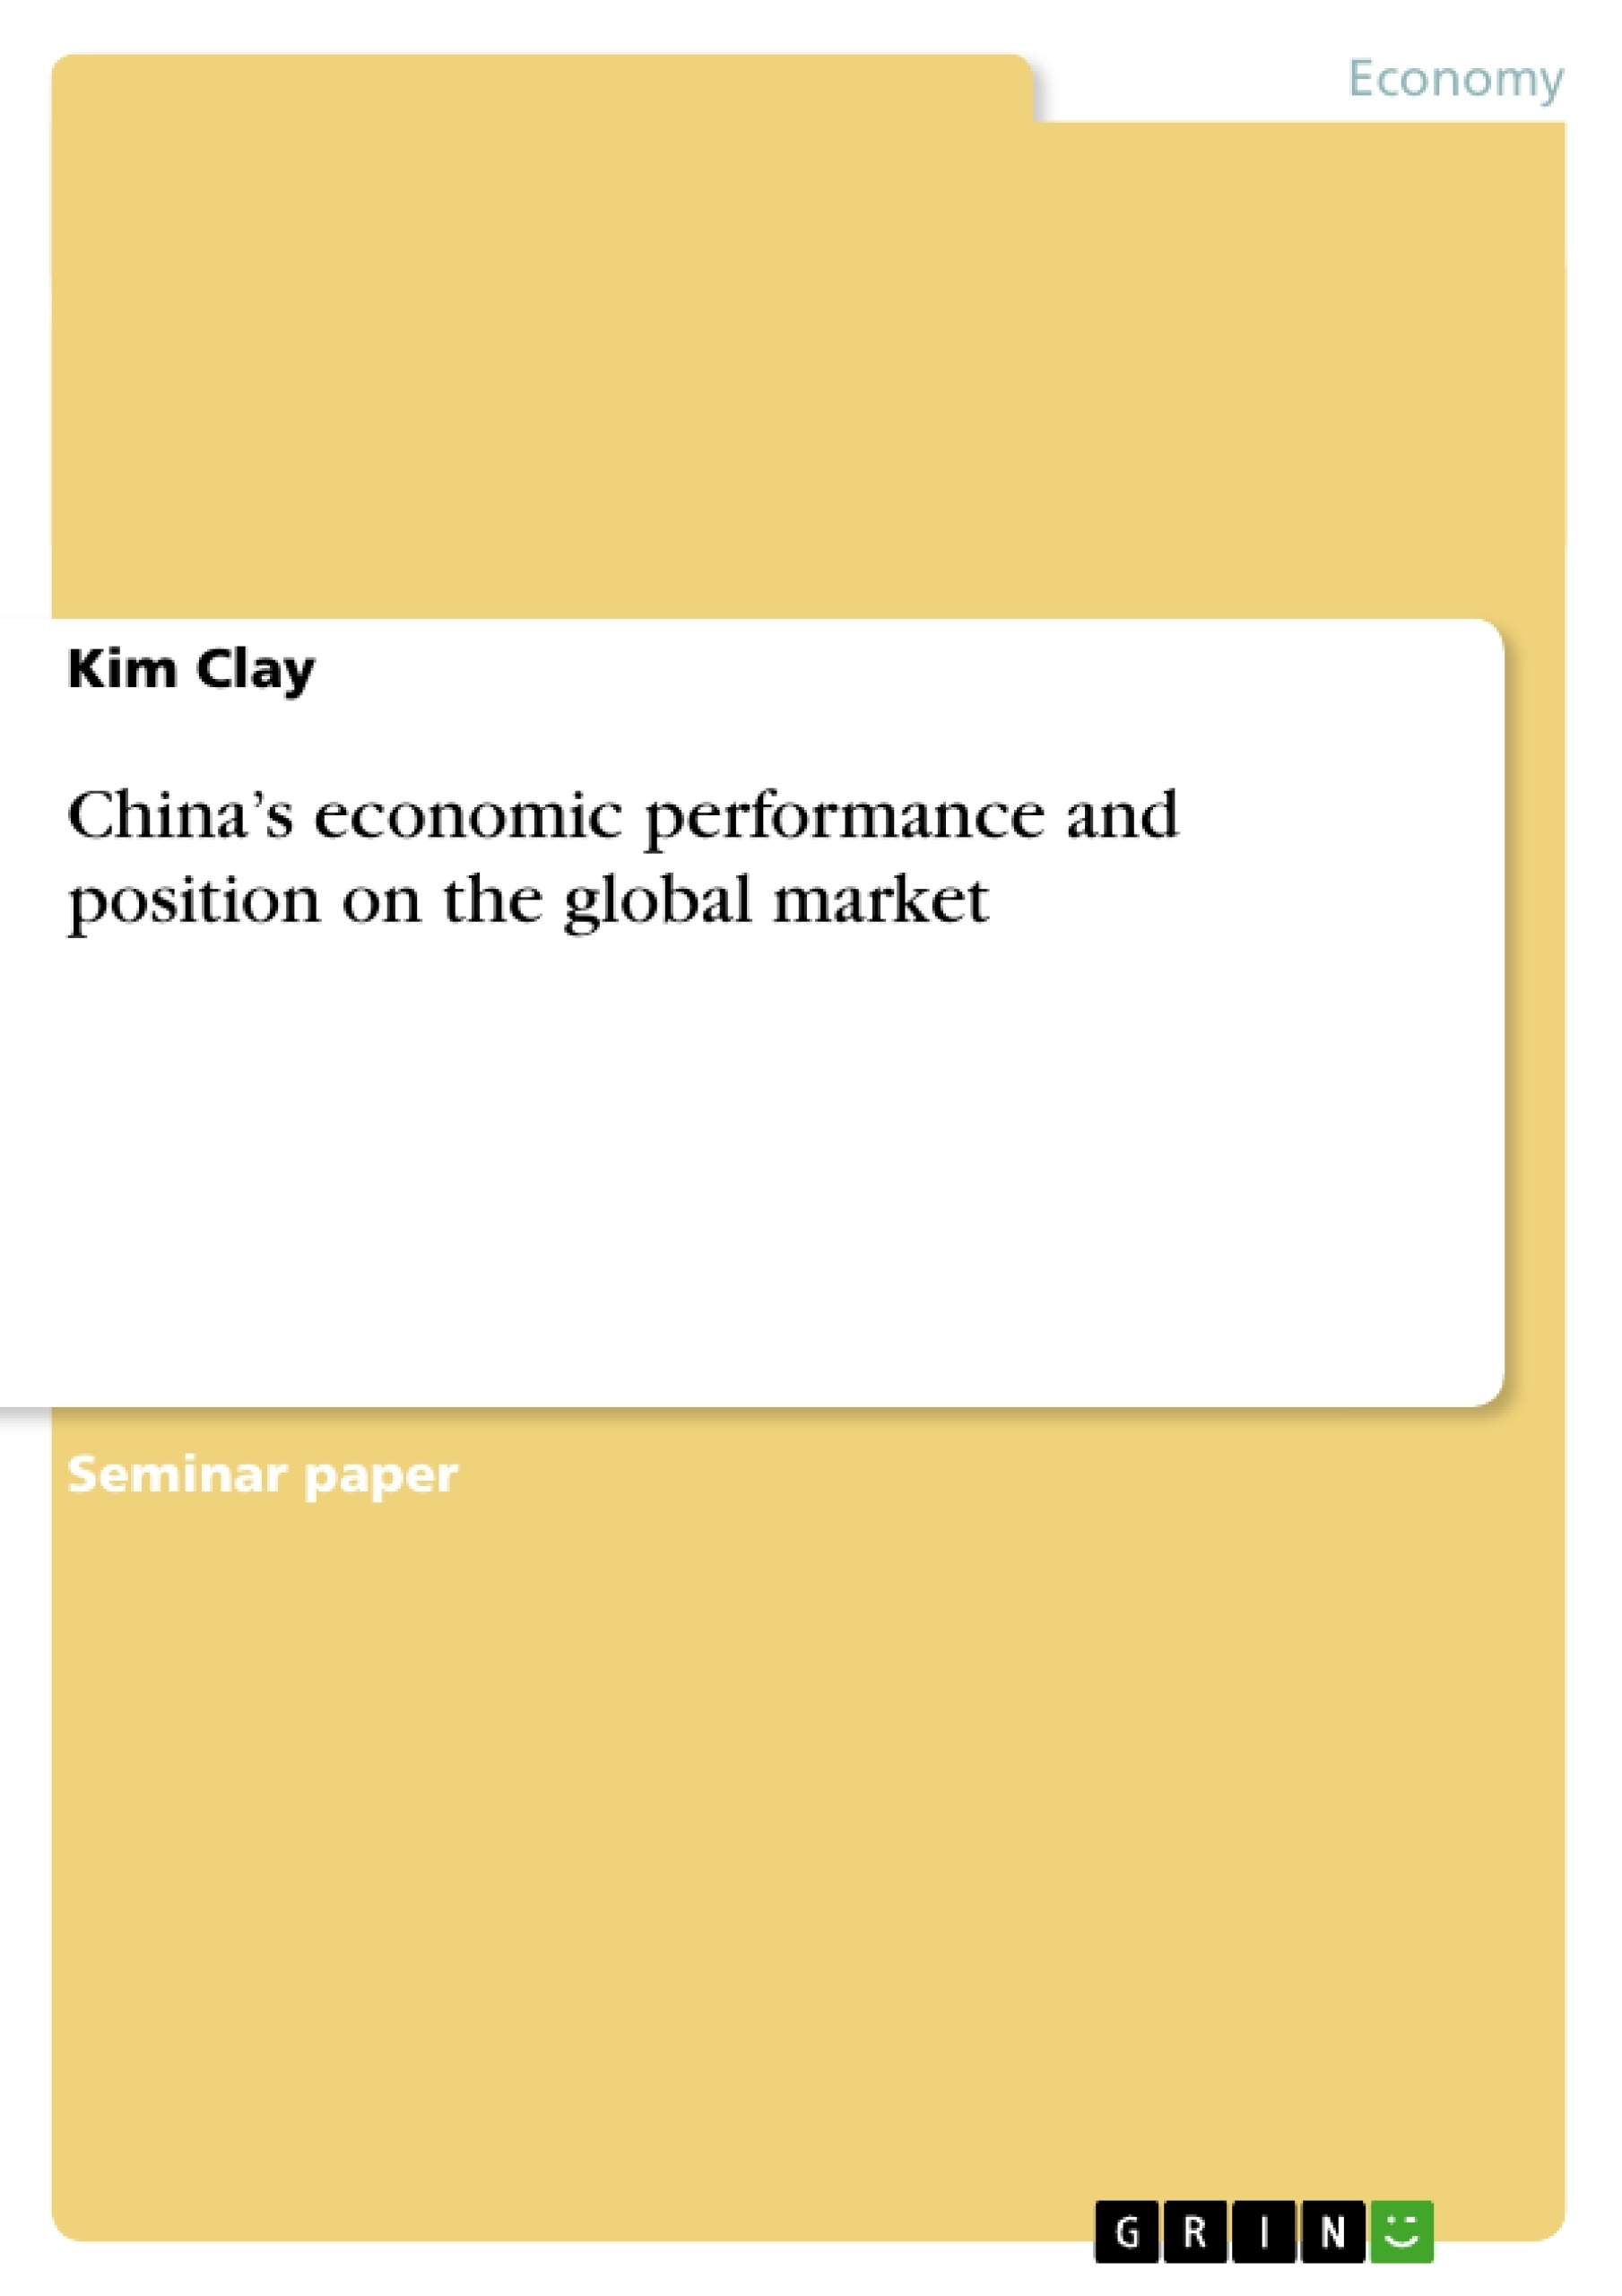 Title: China's economic performance and position on the global market